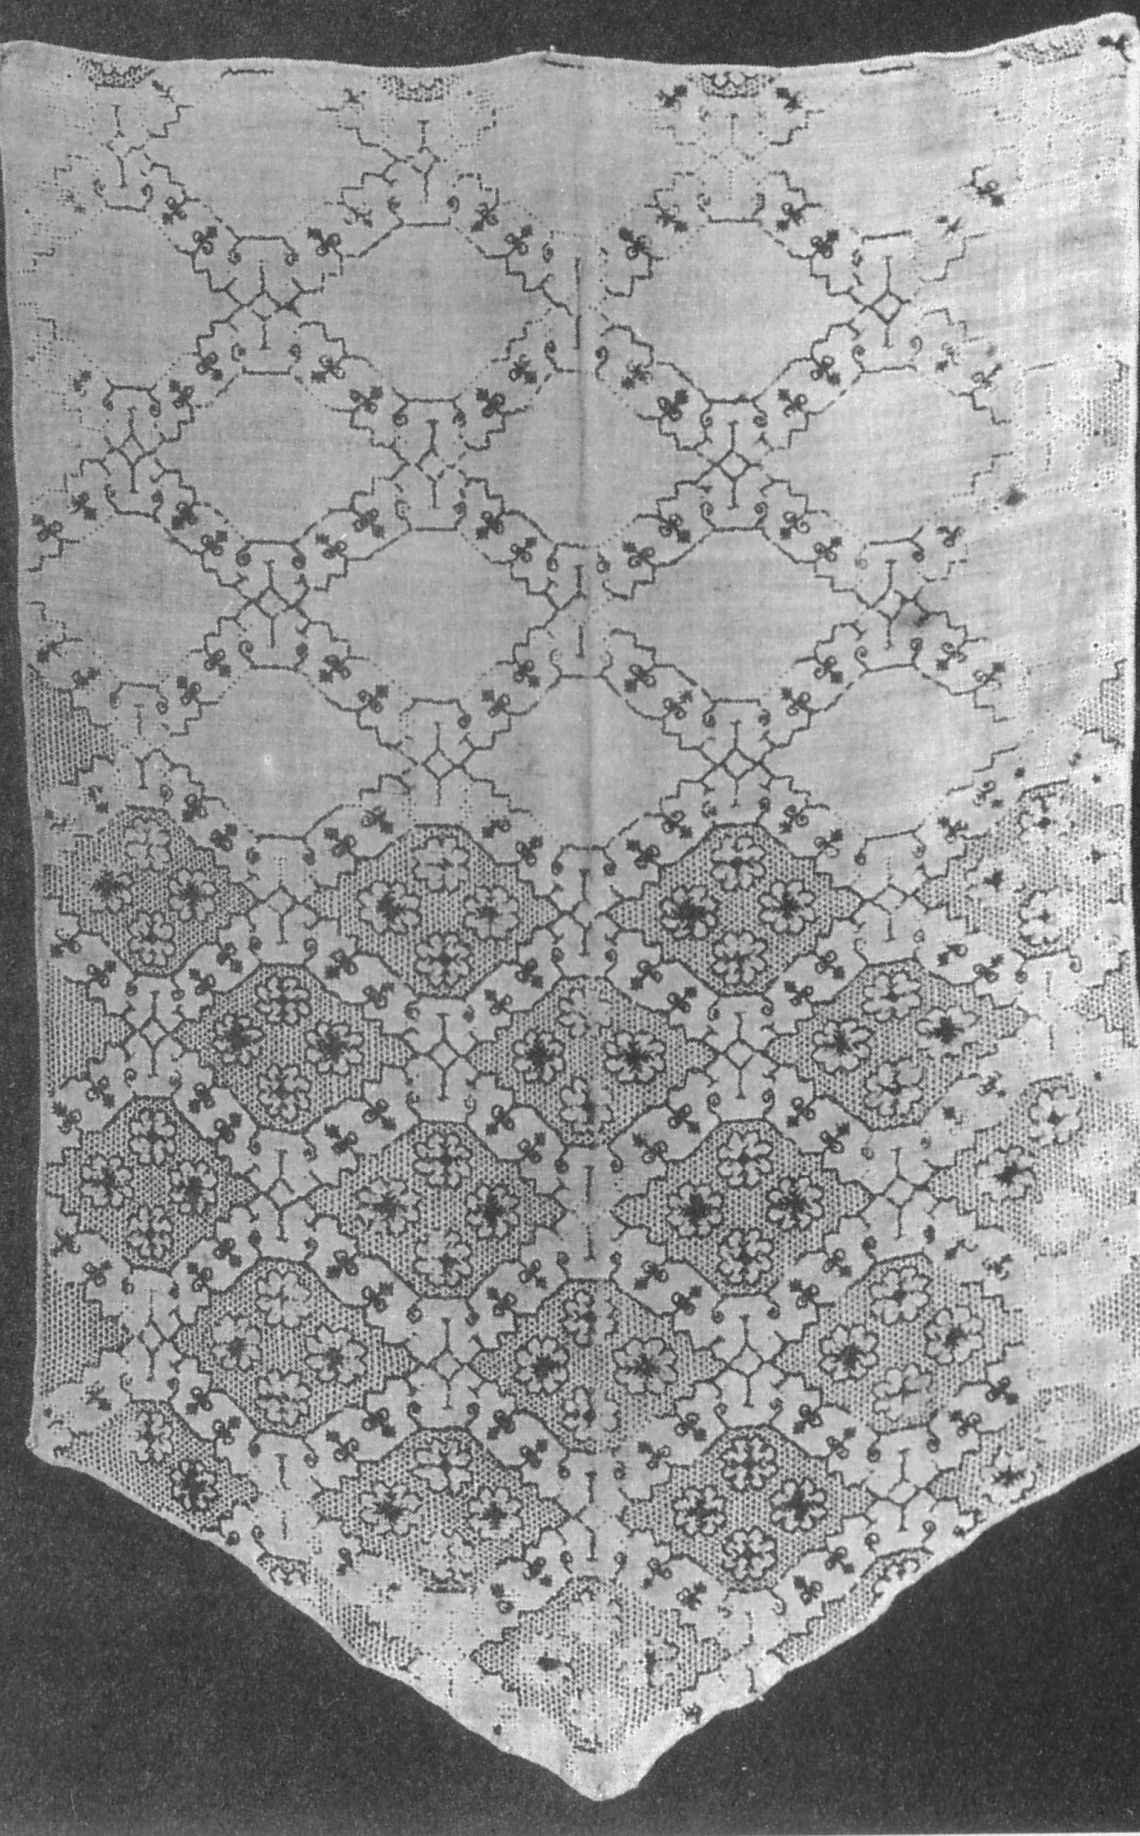 Th c stomacher needs attribution elizabethan embroidery